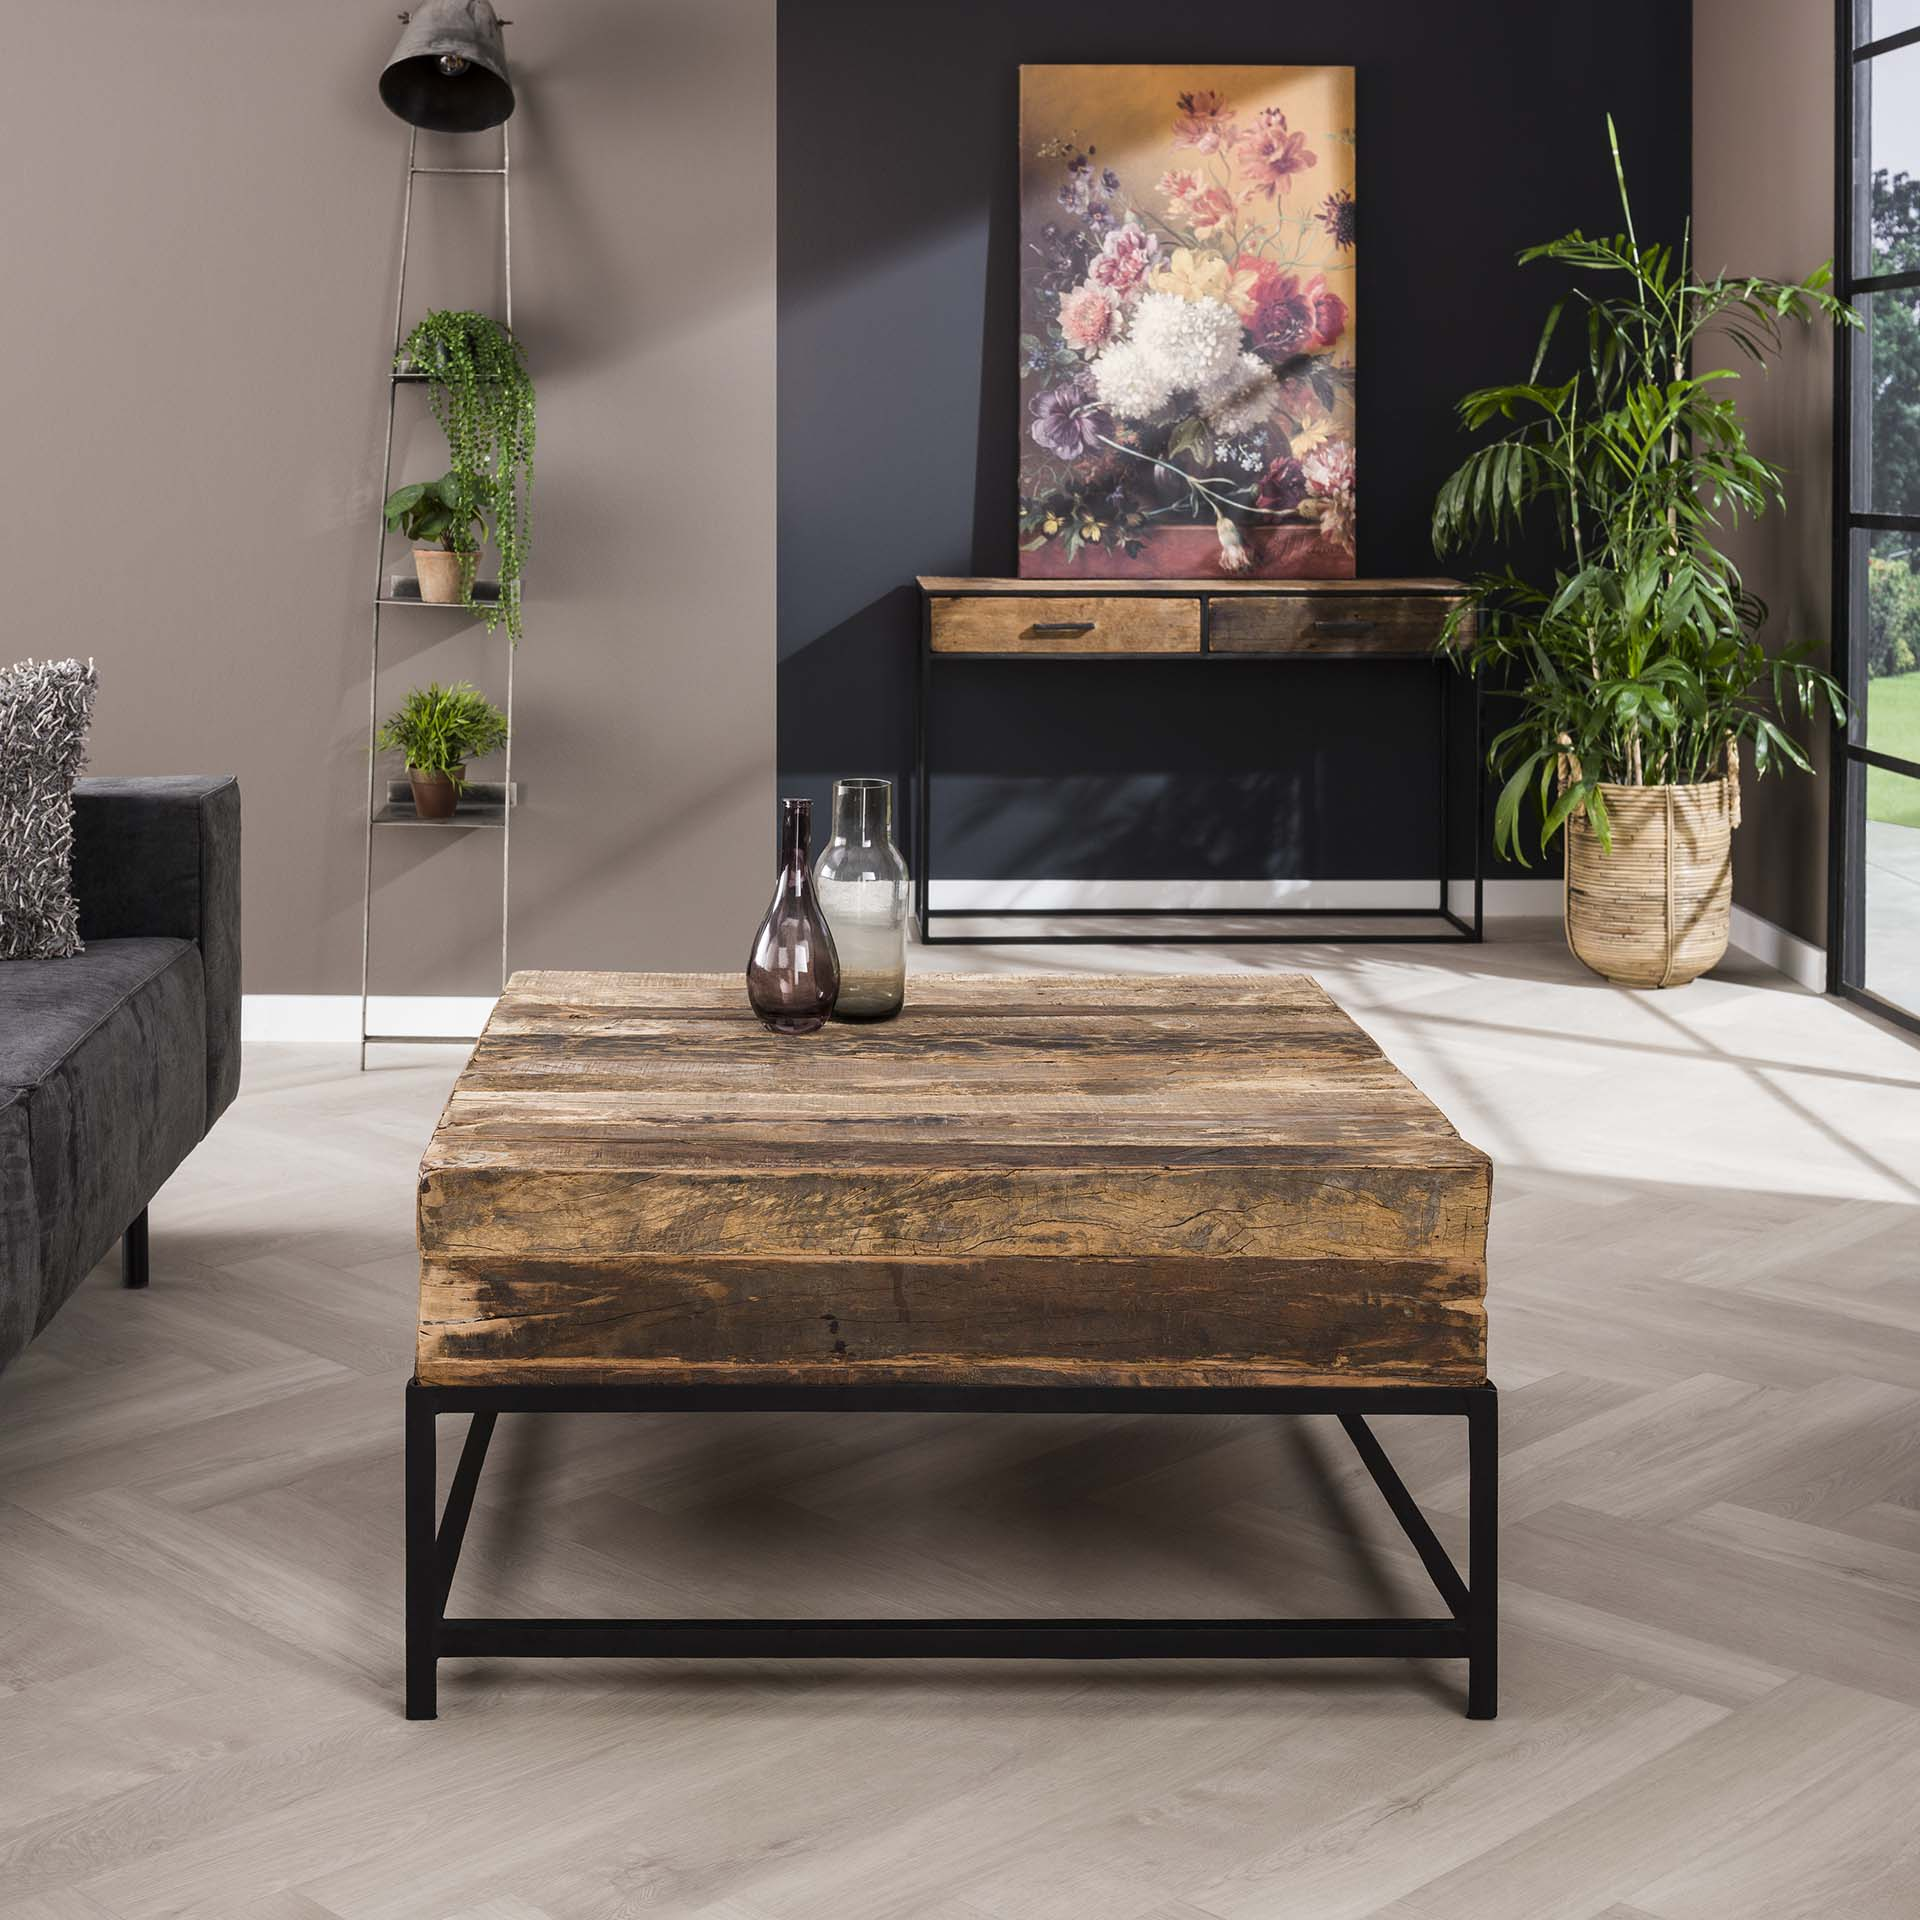 Salontafel Lodge vierkant - Massief gerecycled hout